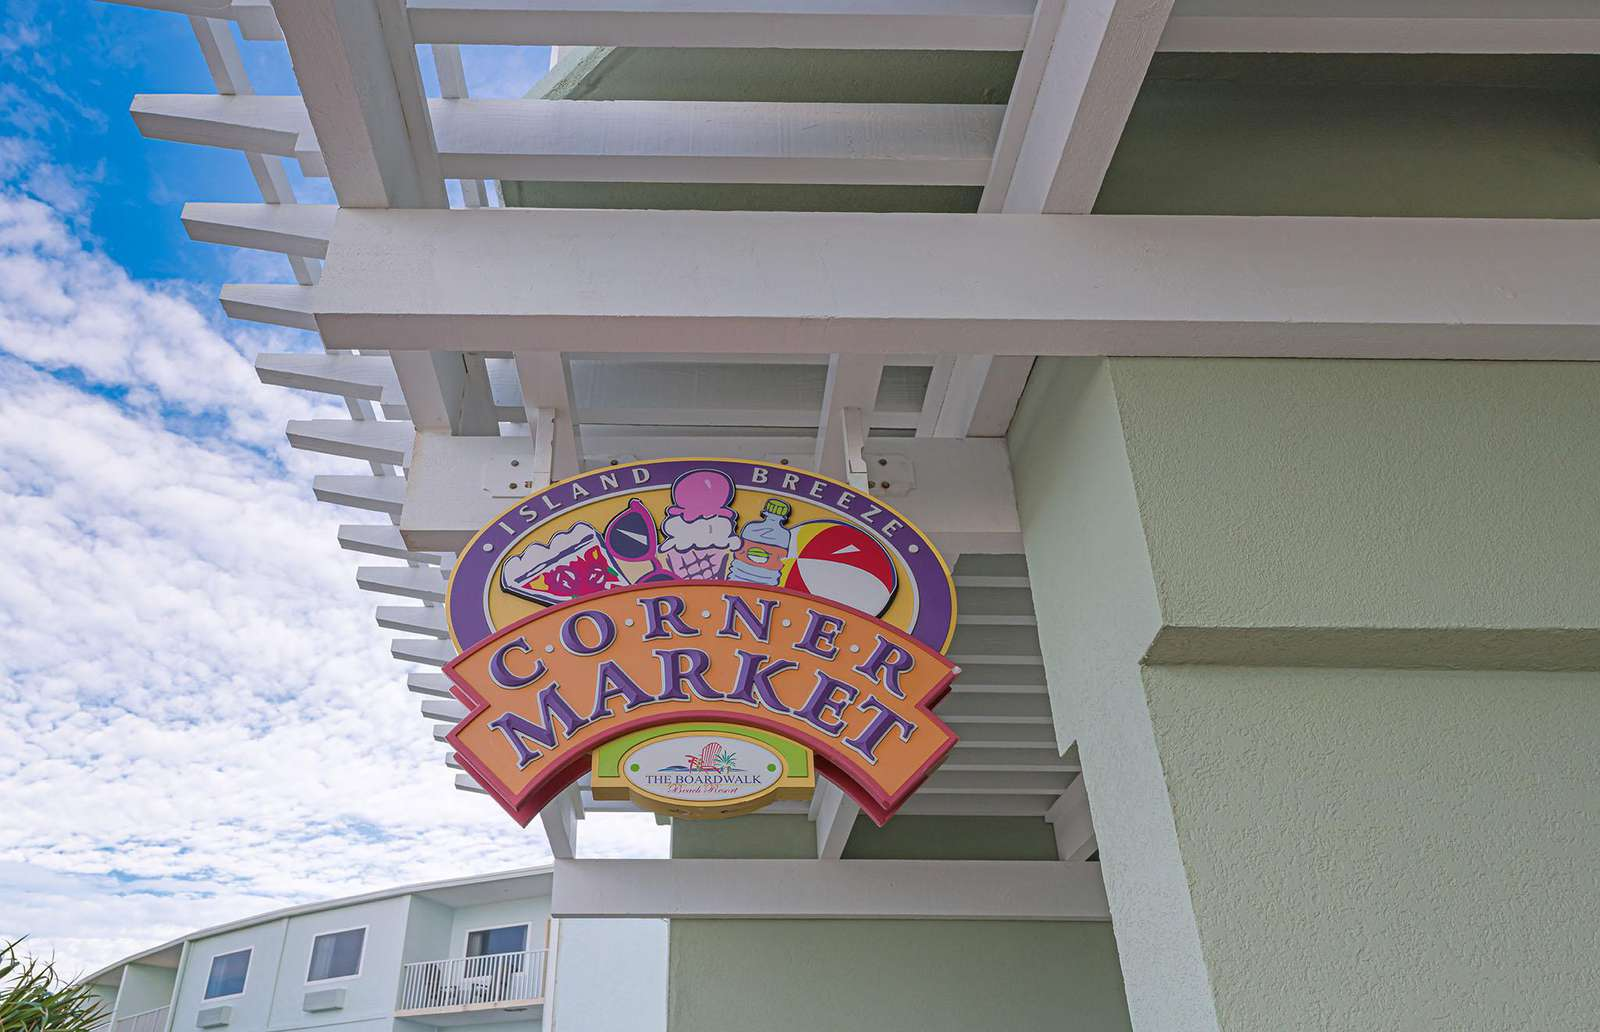 The Corner Market has something for everyone!